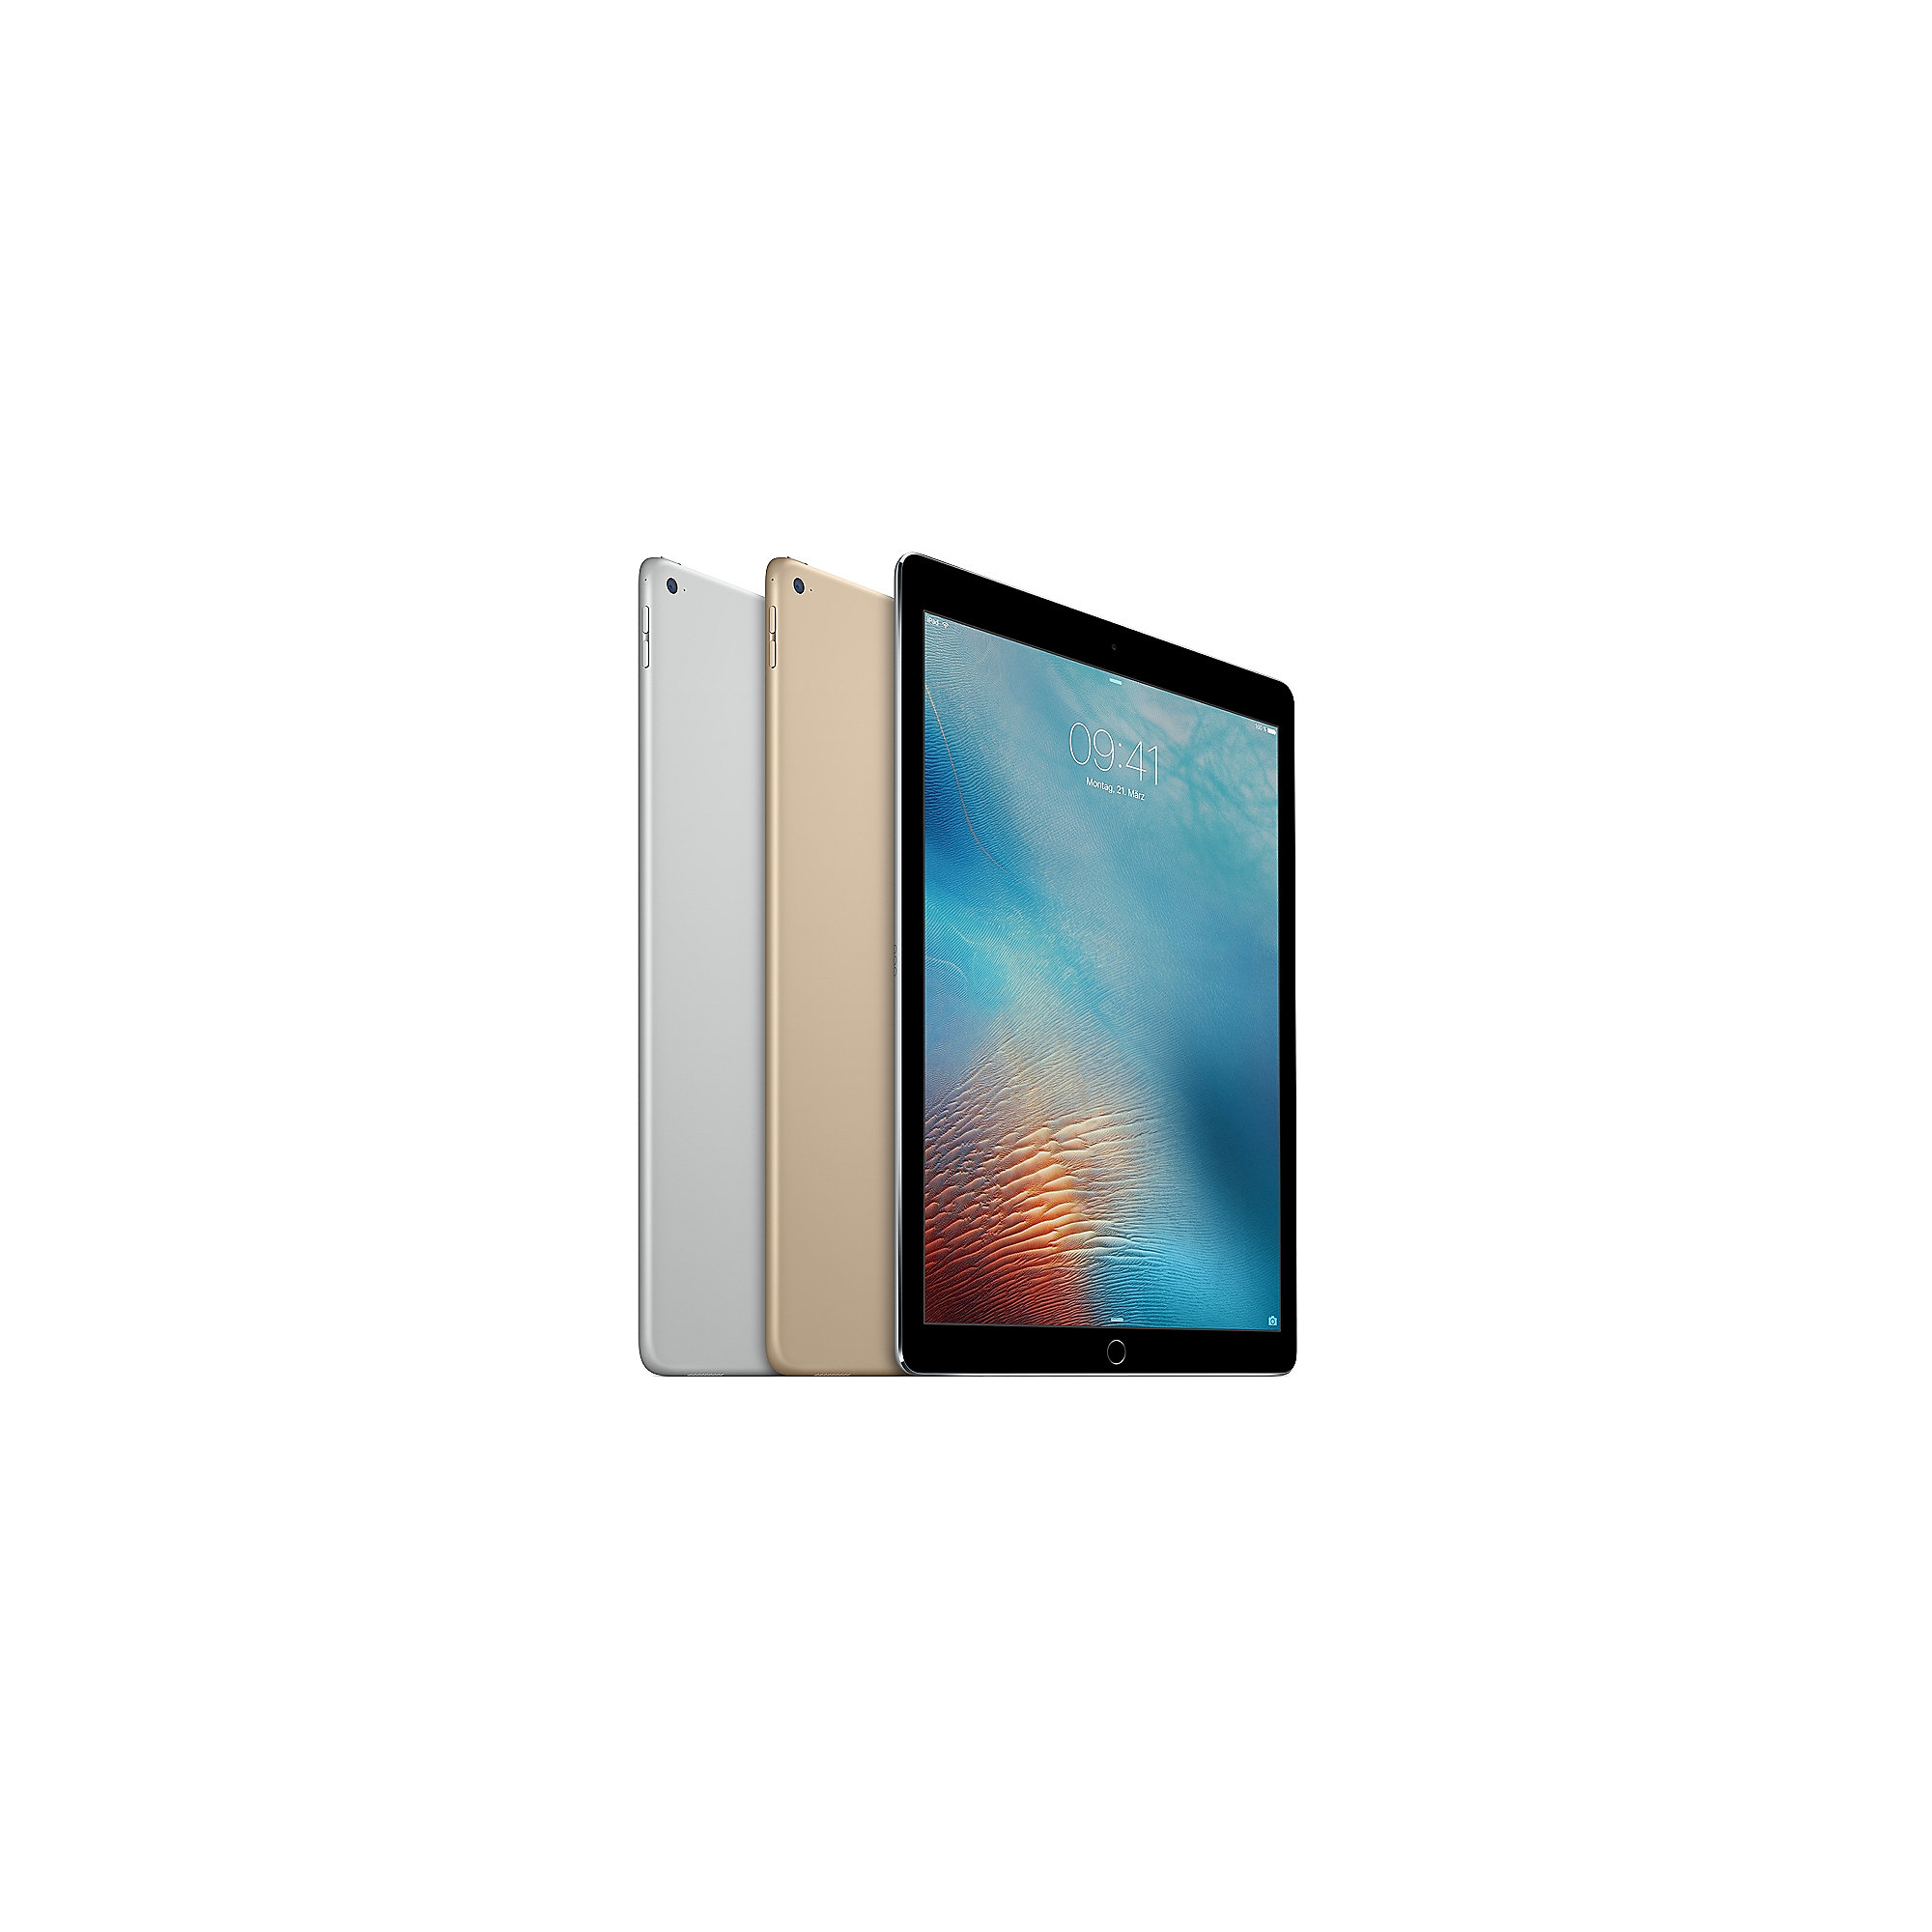 Apple iPad Pro Wi-Fi + Cellular 128 GB Spacegrau (ML3K2FD/A)